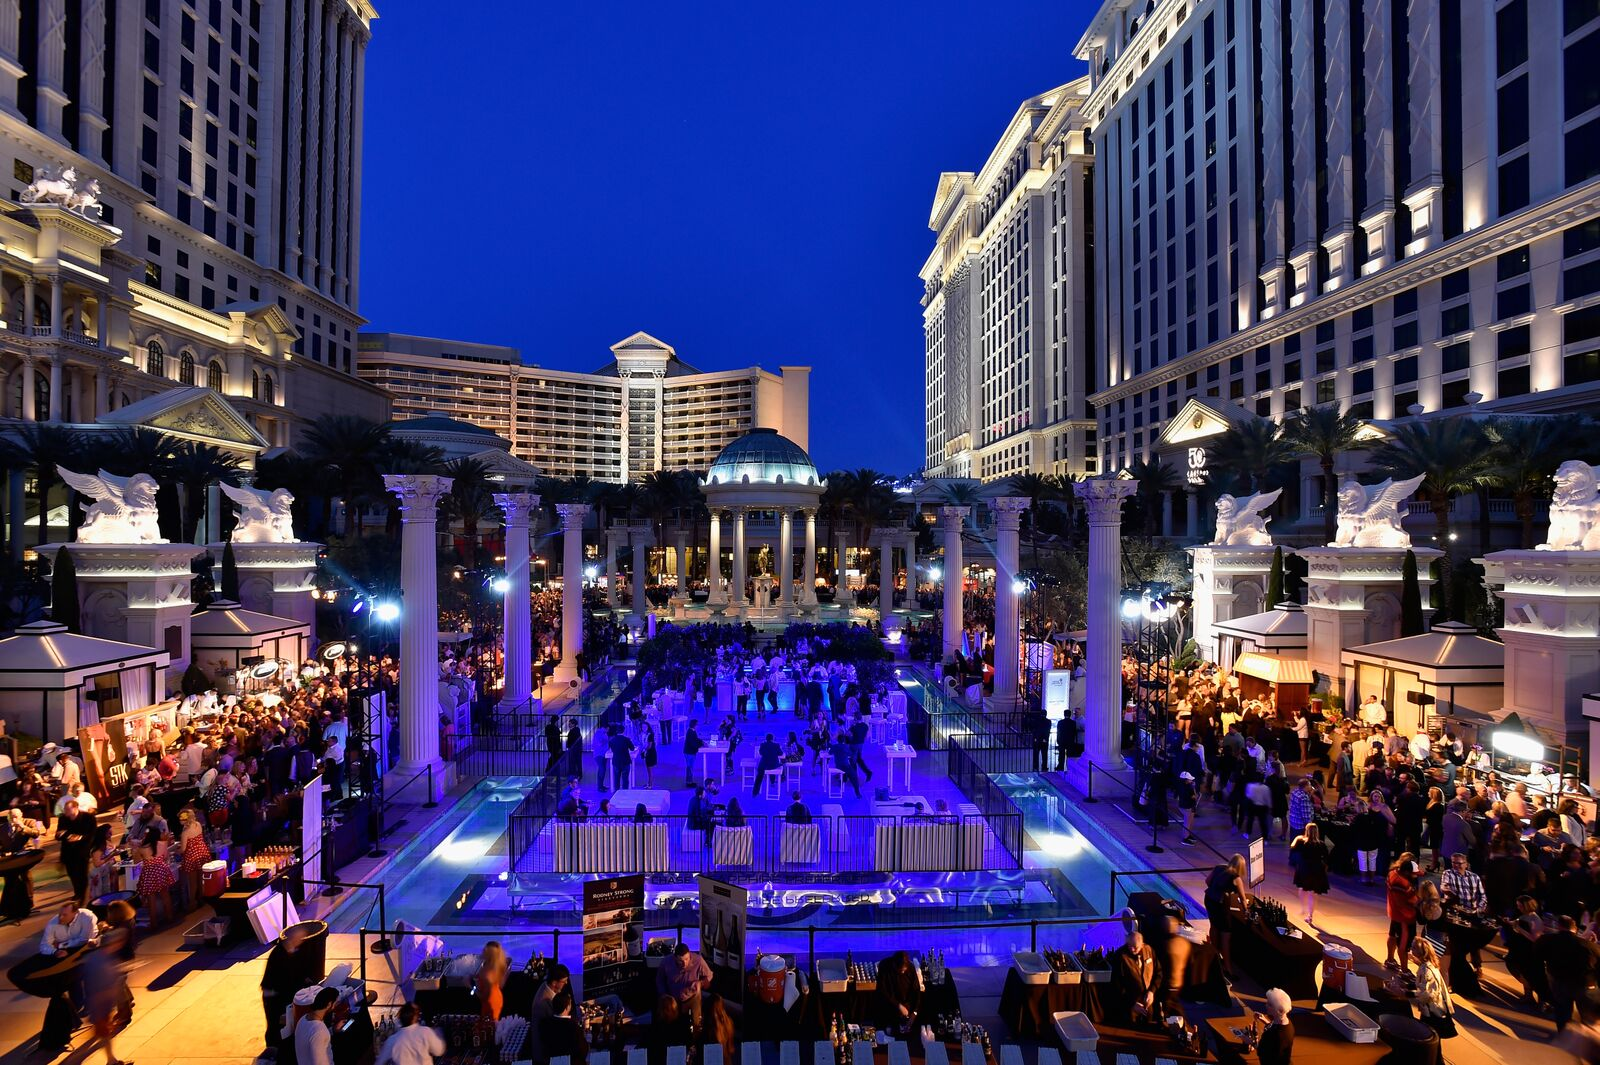 Vegas uncork'd 2016: the world's greatest chefs descend upon sin city